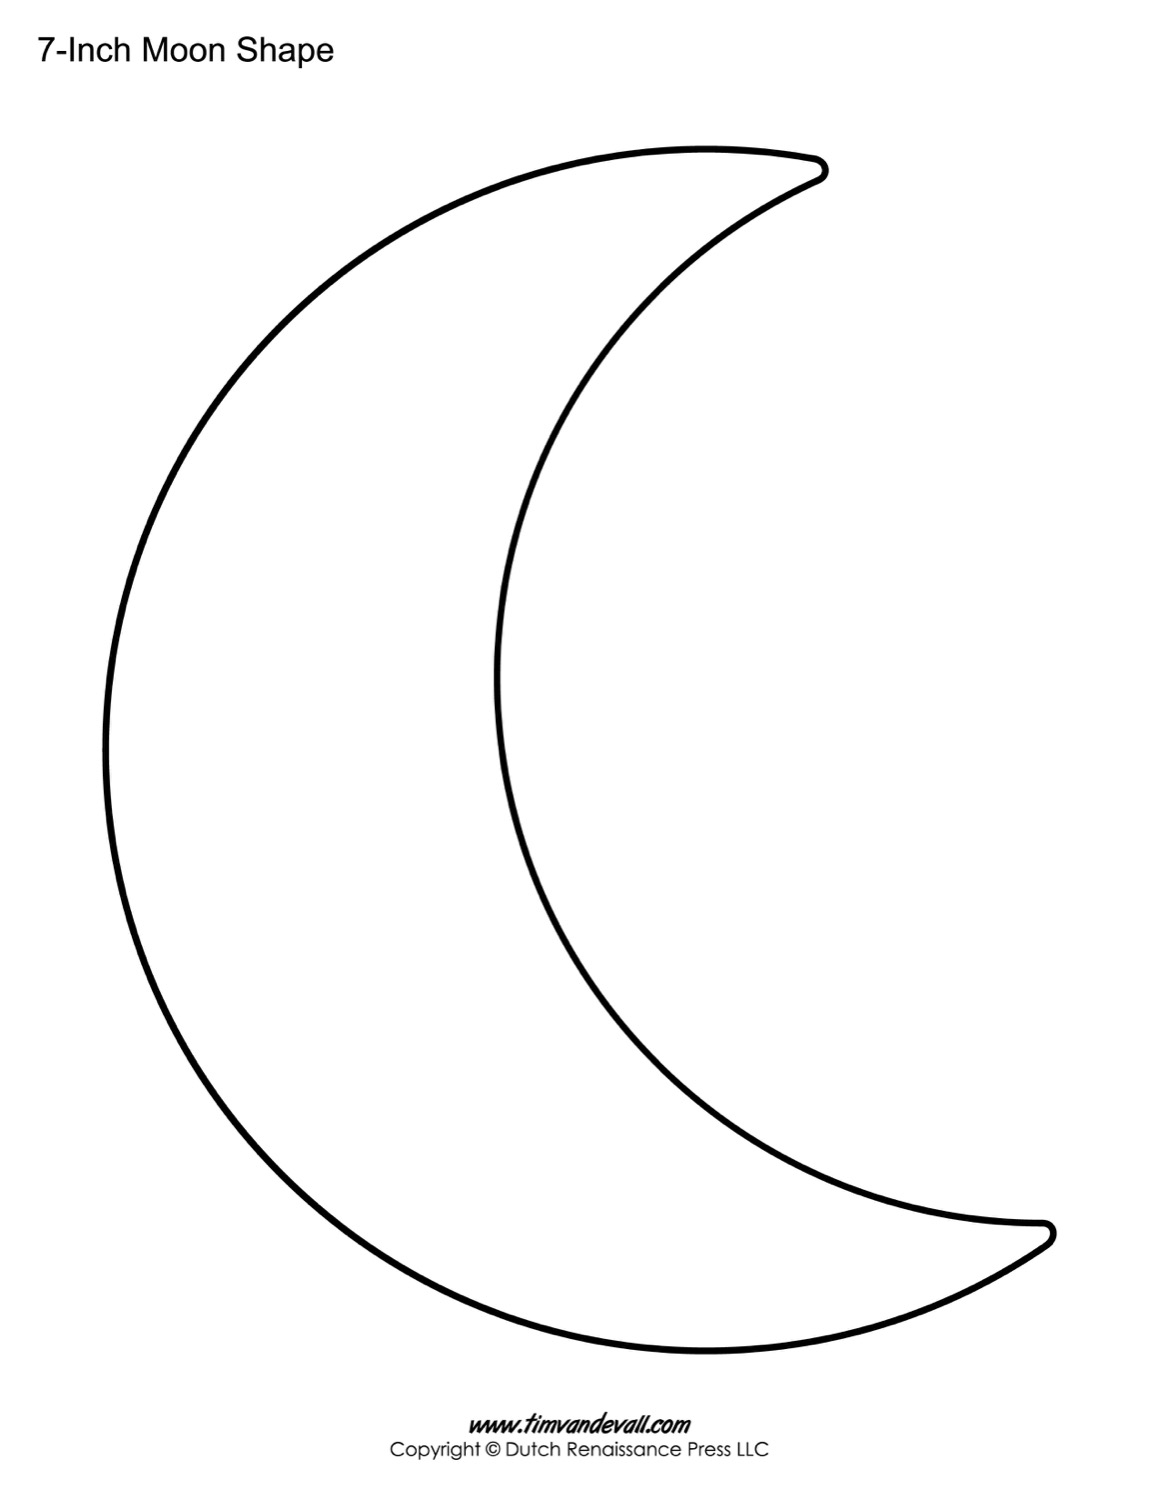 Moon Outline Printable Smiling Crescent Shape Sketch Coloring Page